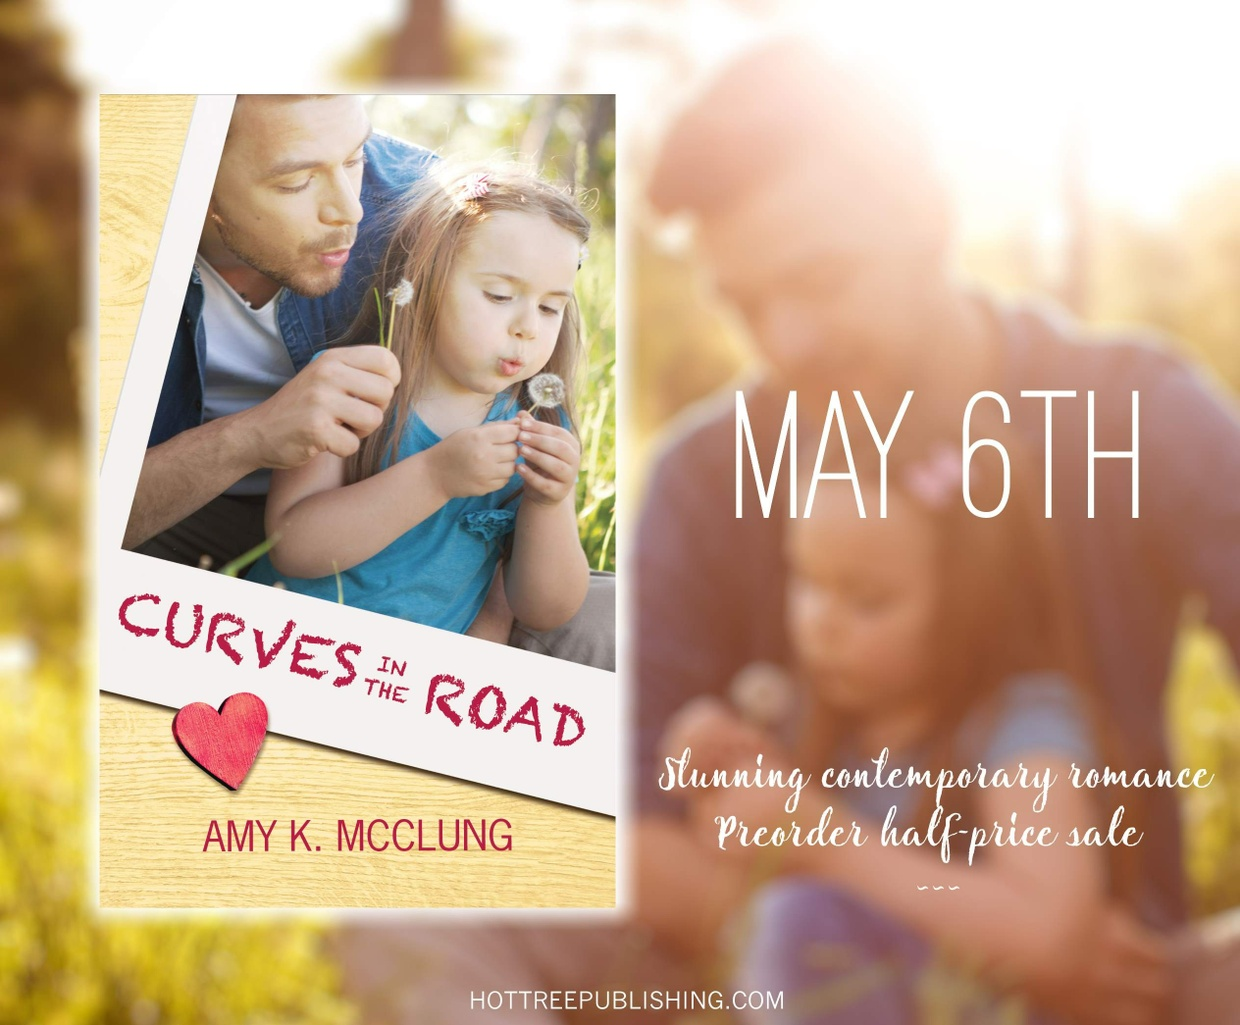 PDF Curves in the Road by Amy K. McClung